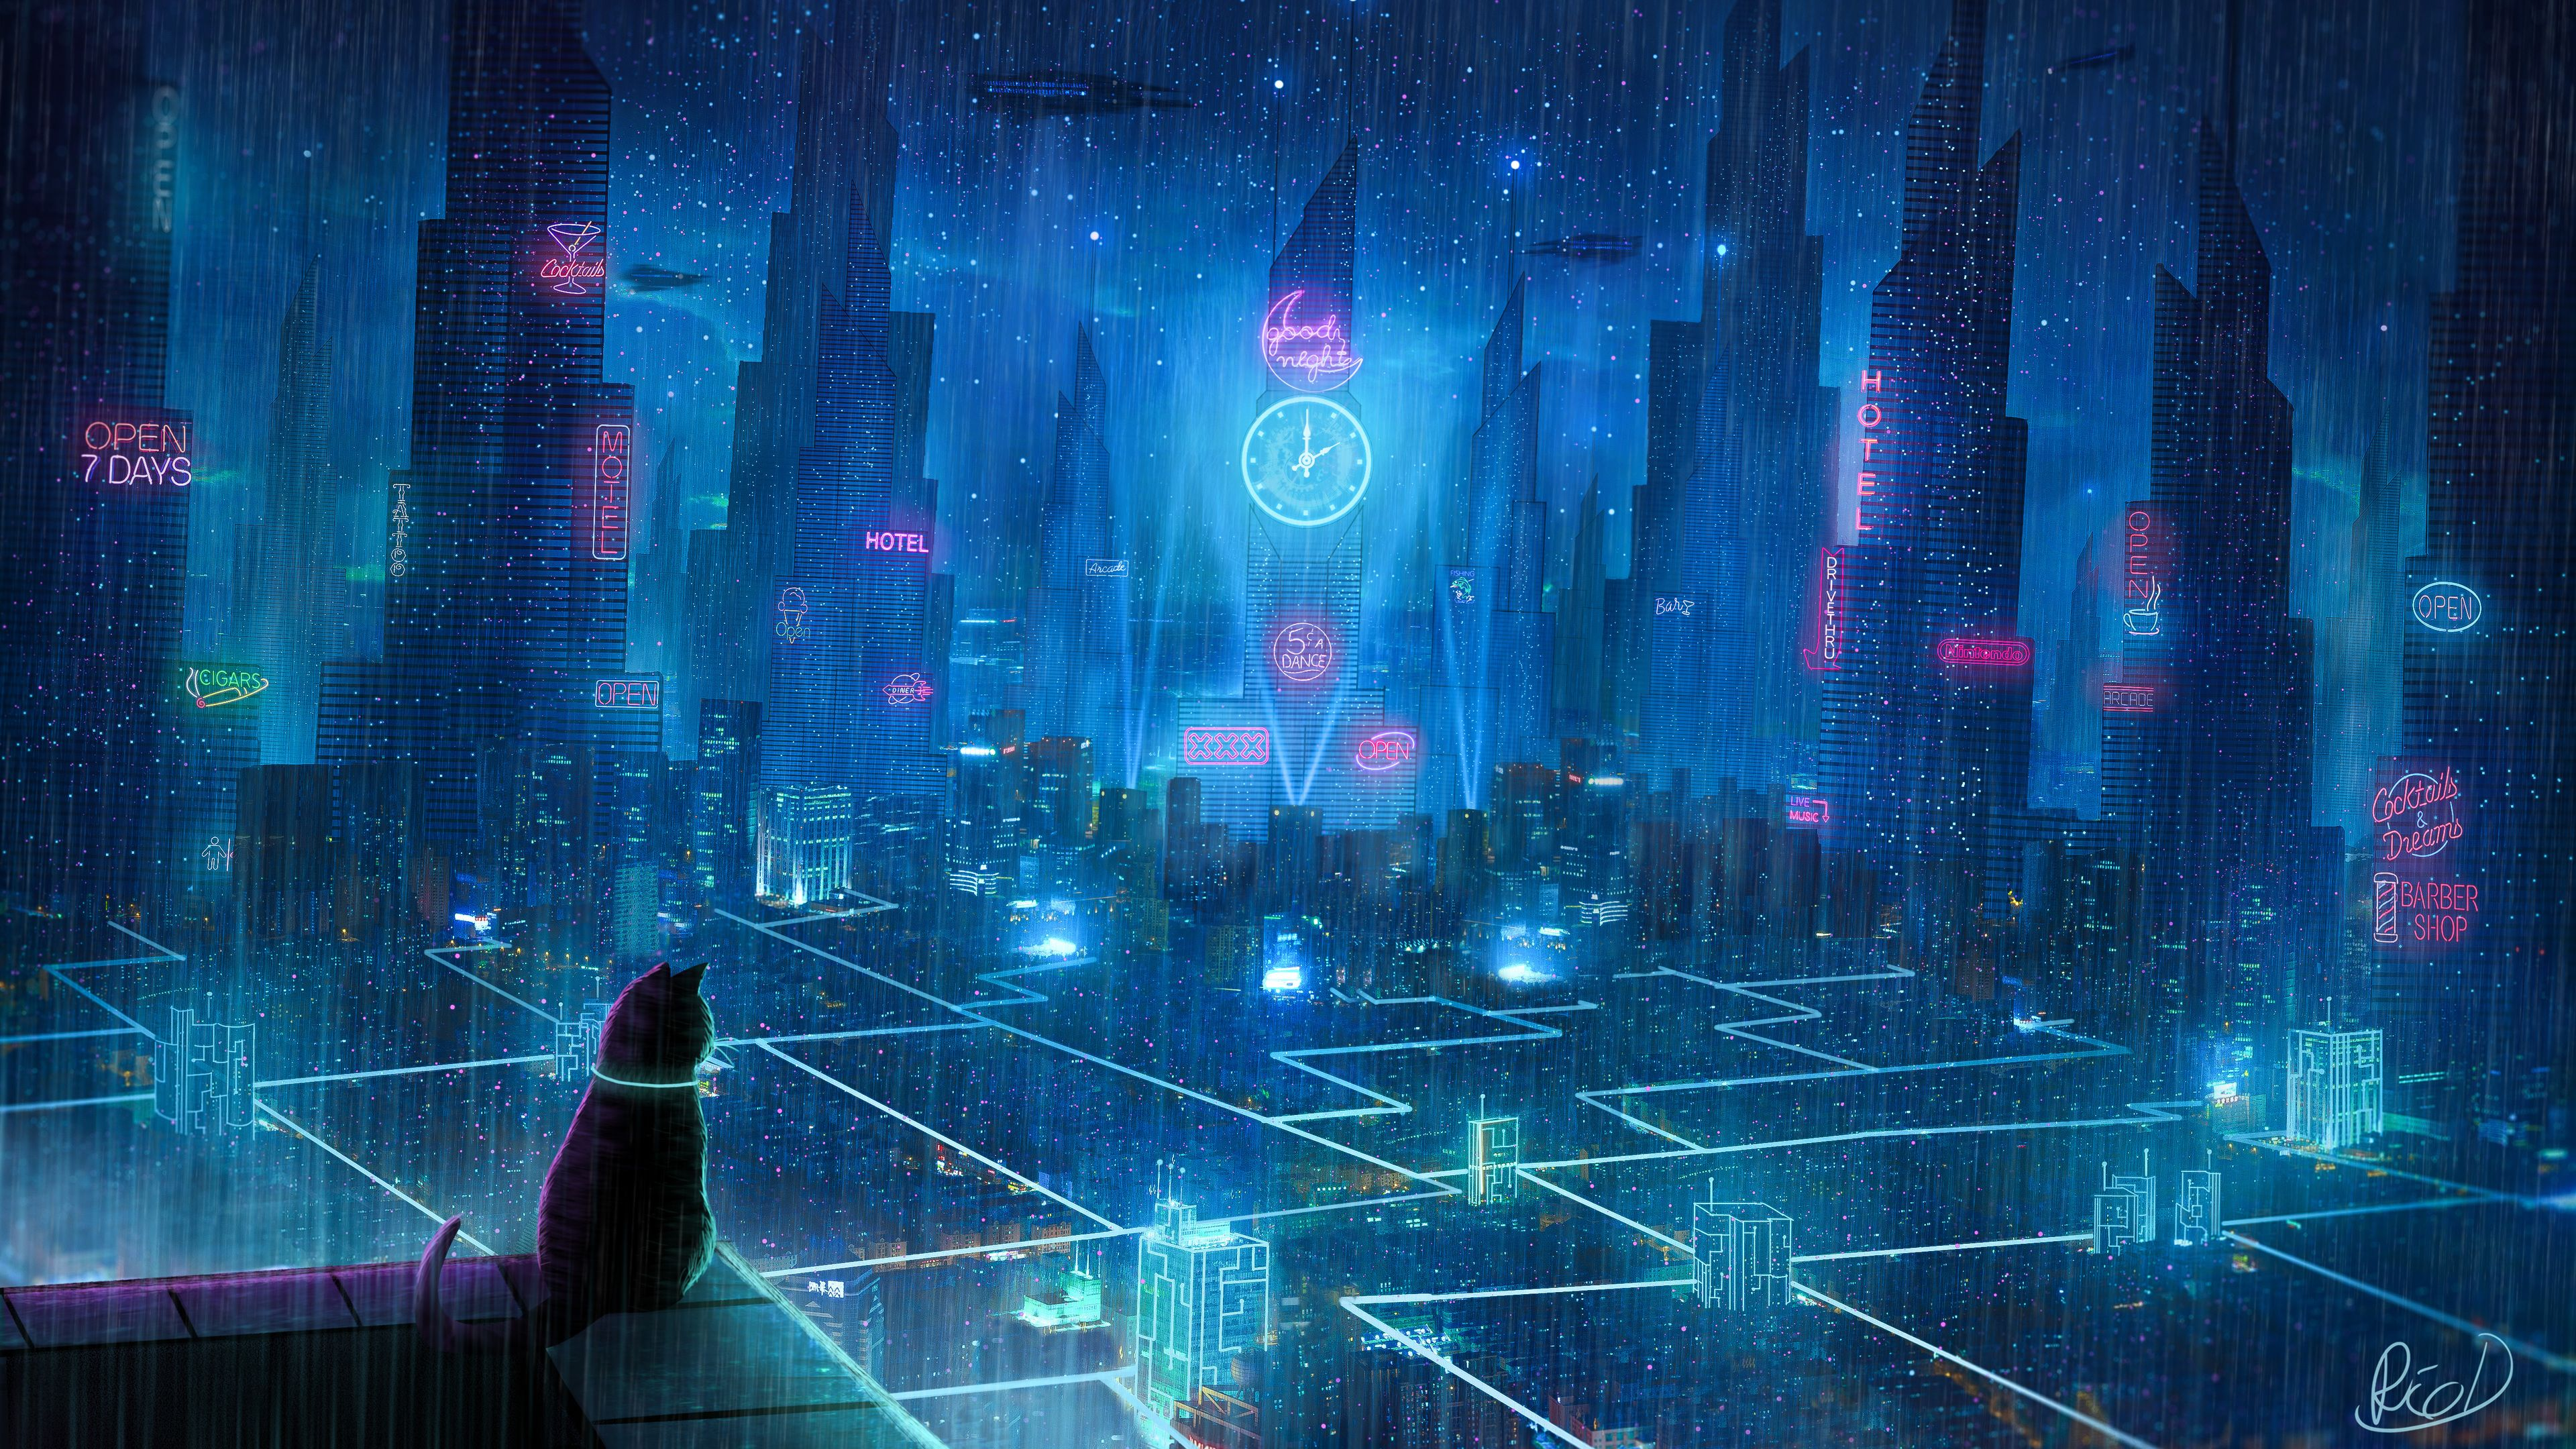 Cat Rain Dream Cyberpunk City 4k Rain Wallpapers Hd Wallpapers Digital Art Wallpapers Deviantart Wallpapers C Cyberpunk City Rain Wallpapers City Wallpaper